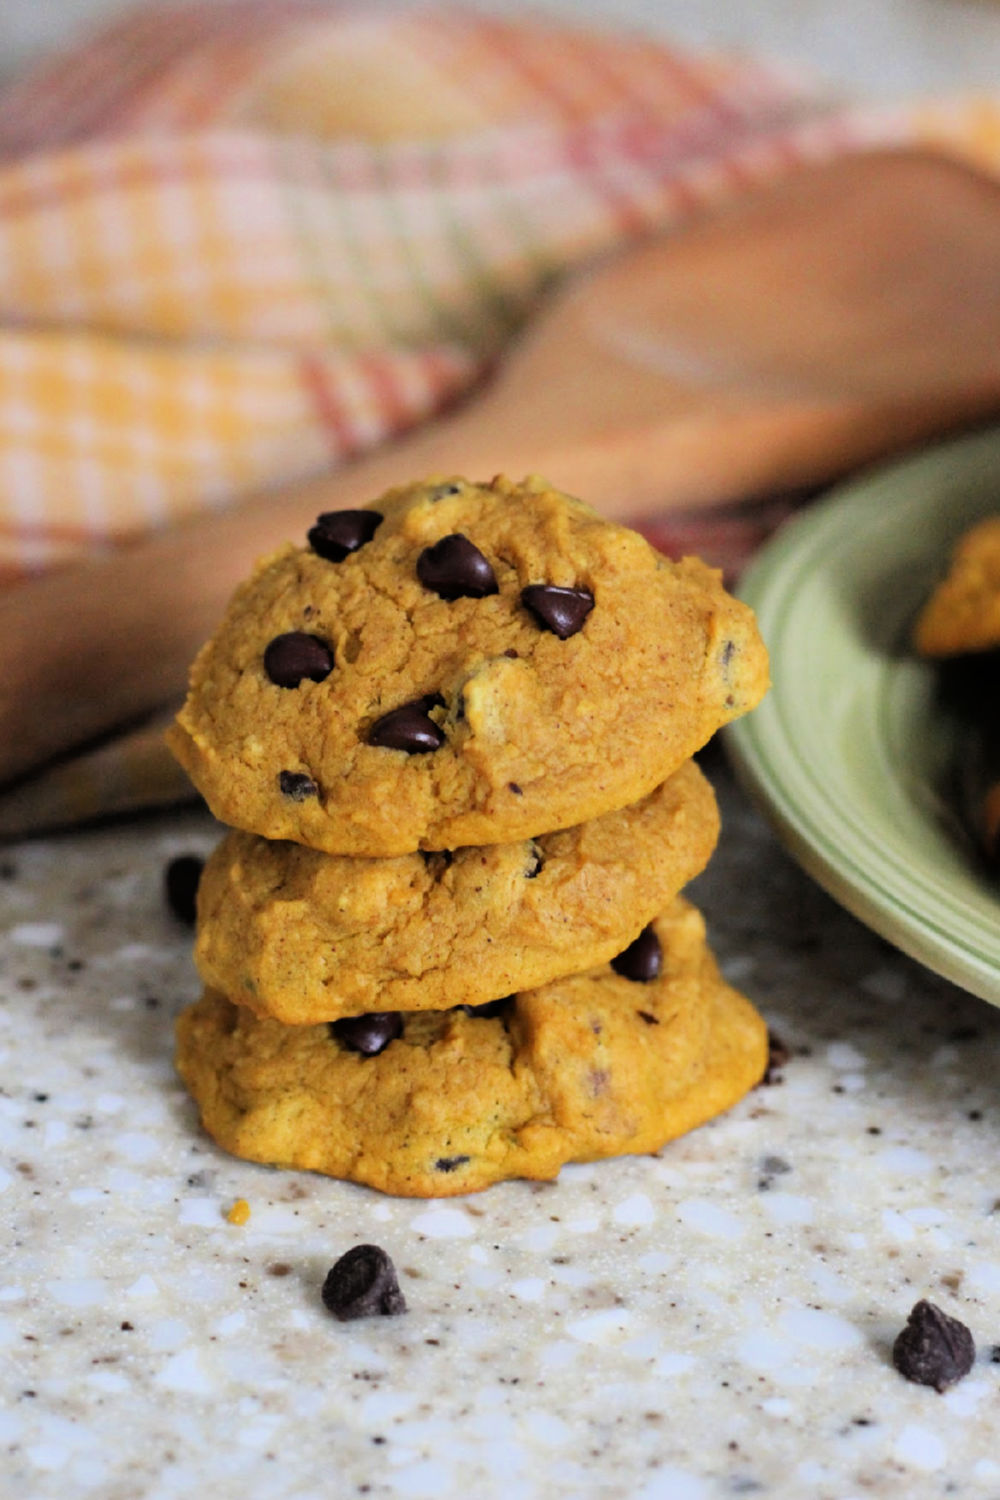 3 Pumpkin cookies with chocolate chips and walnuts